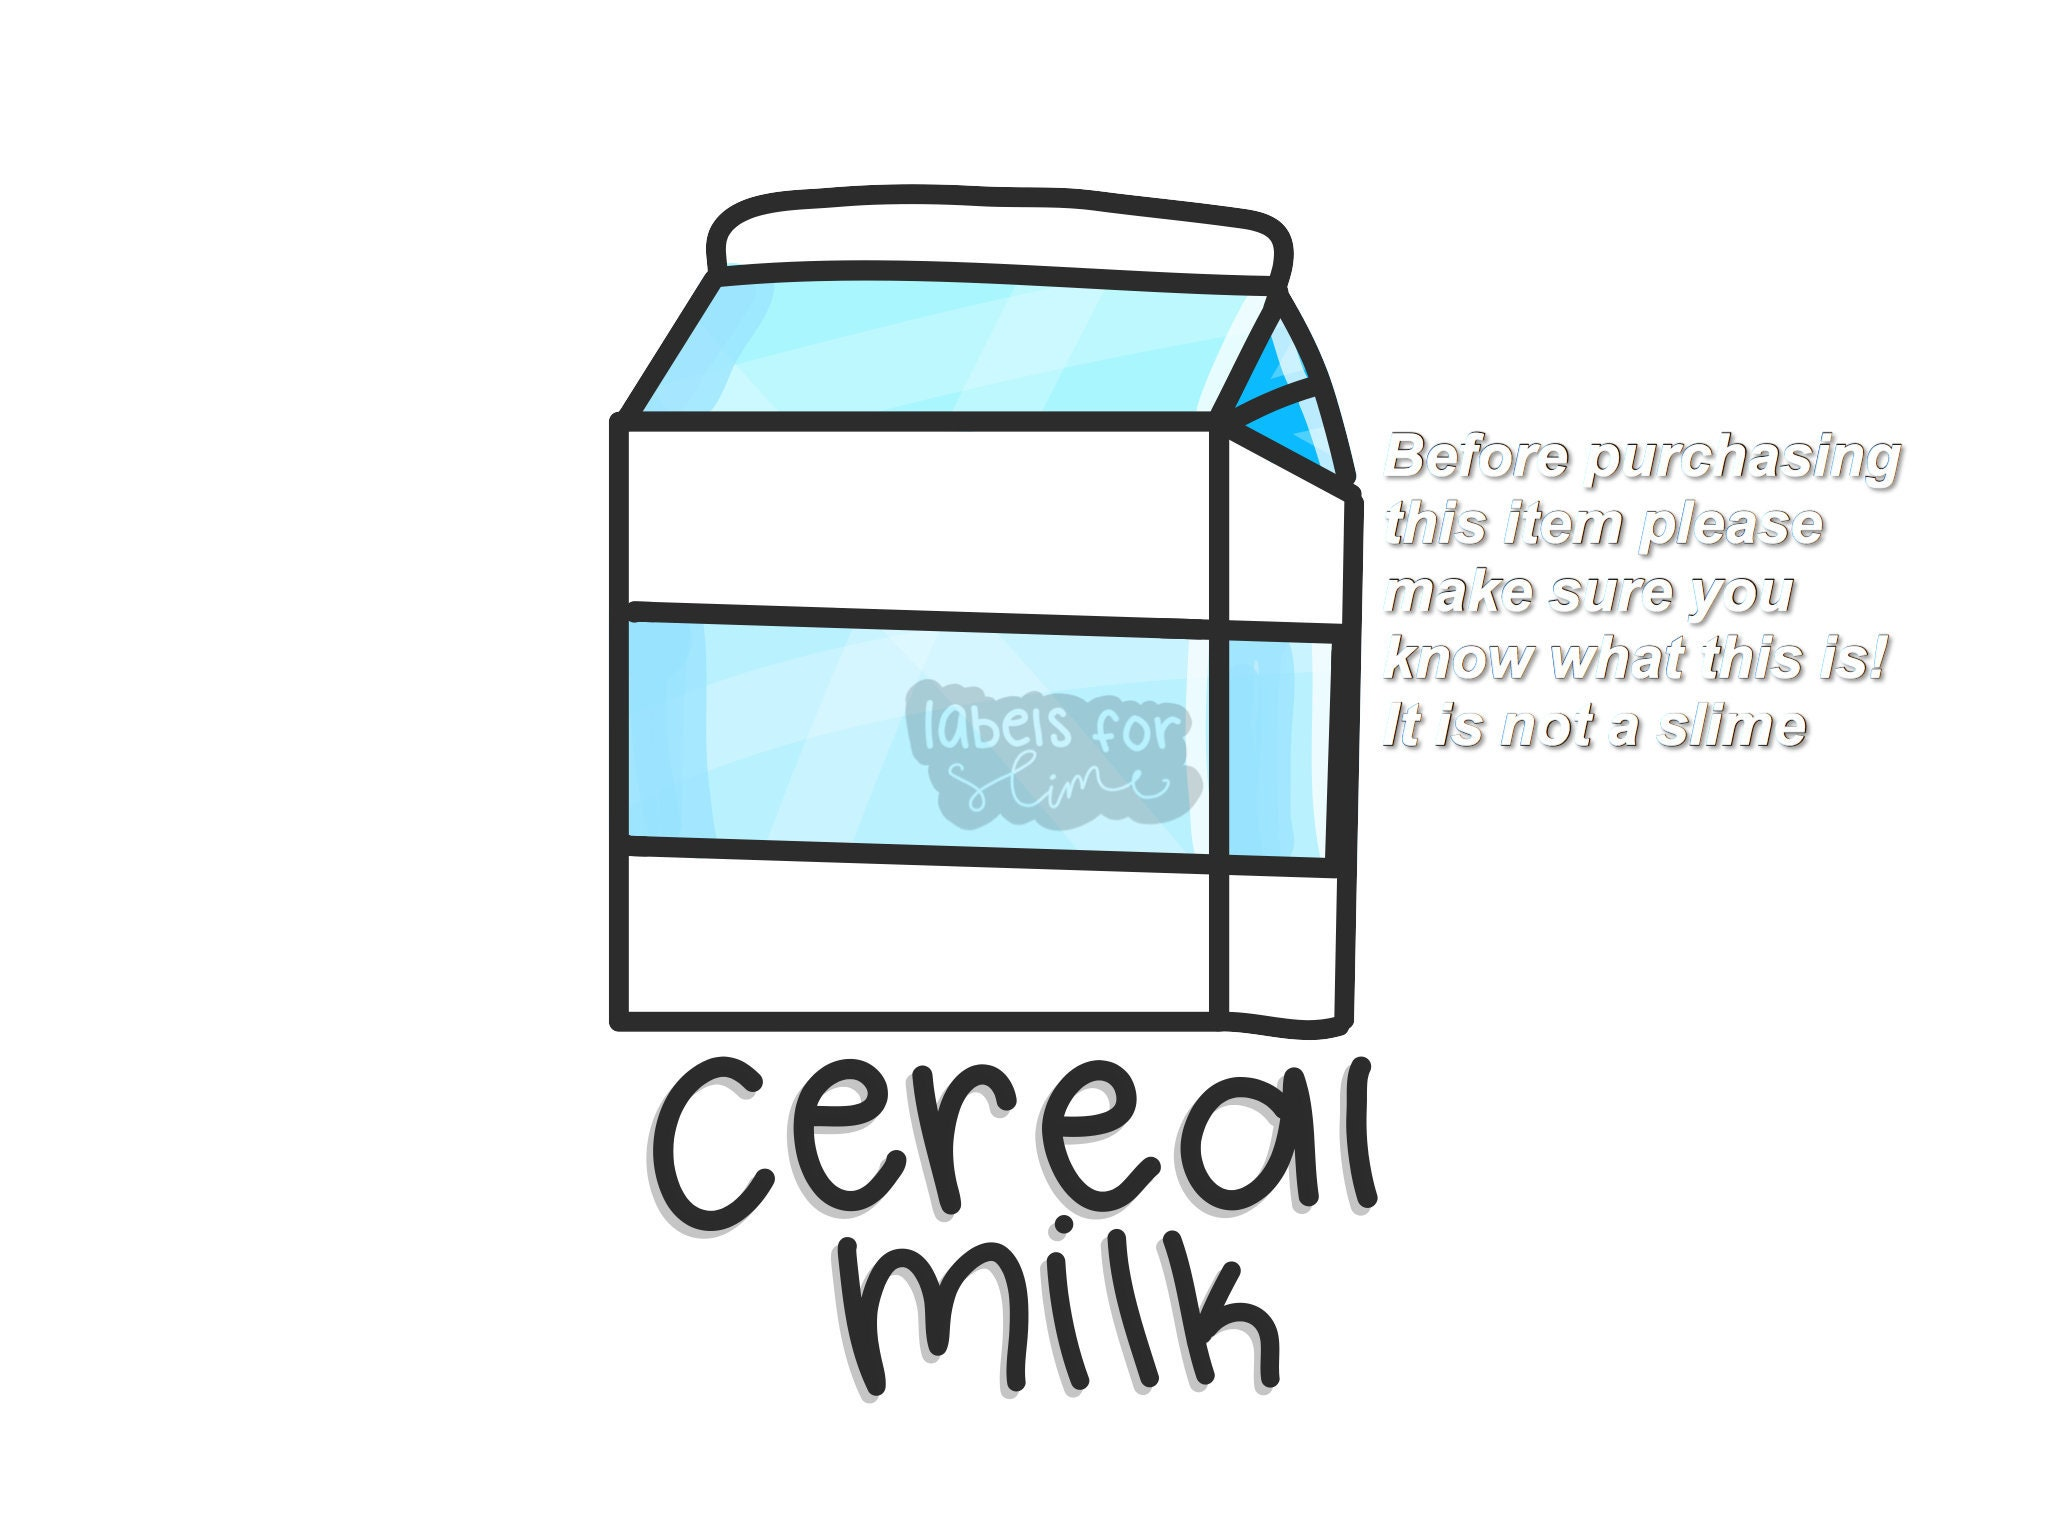 Cereal milk slime label ccuart